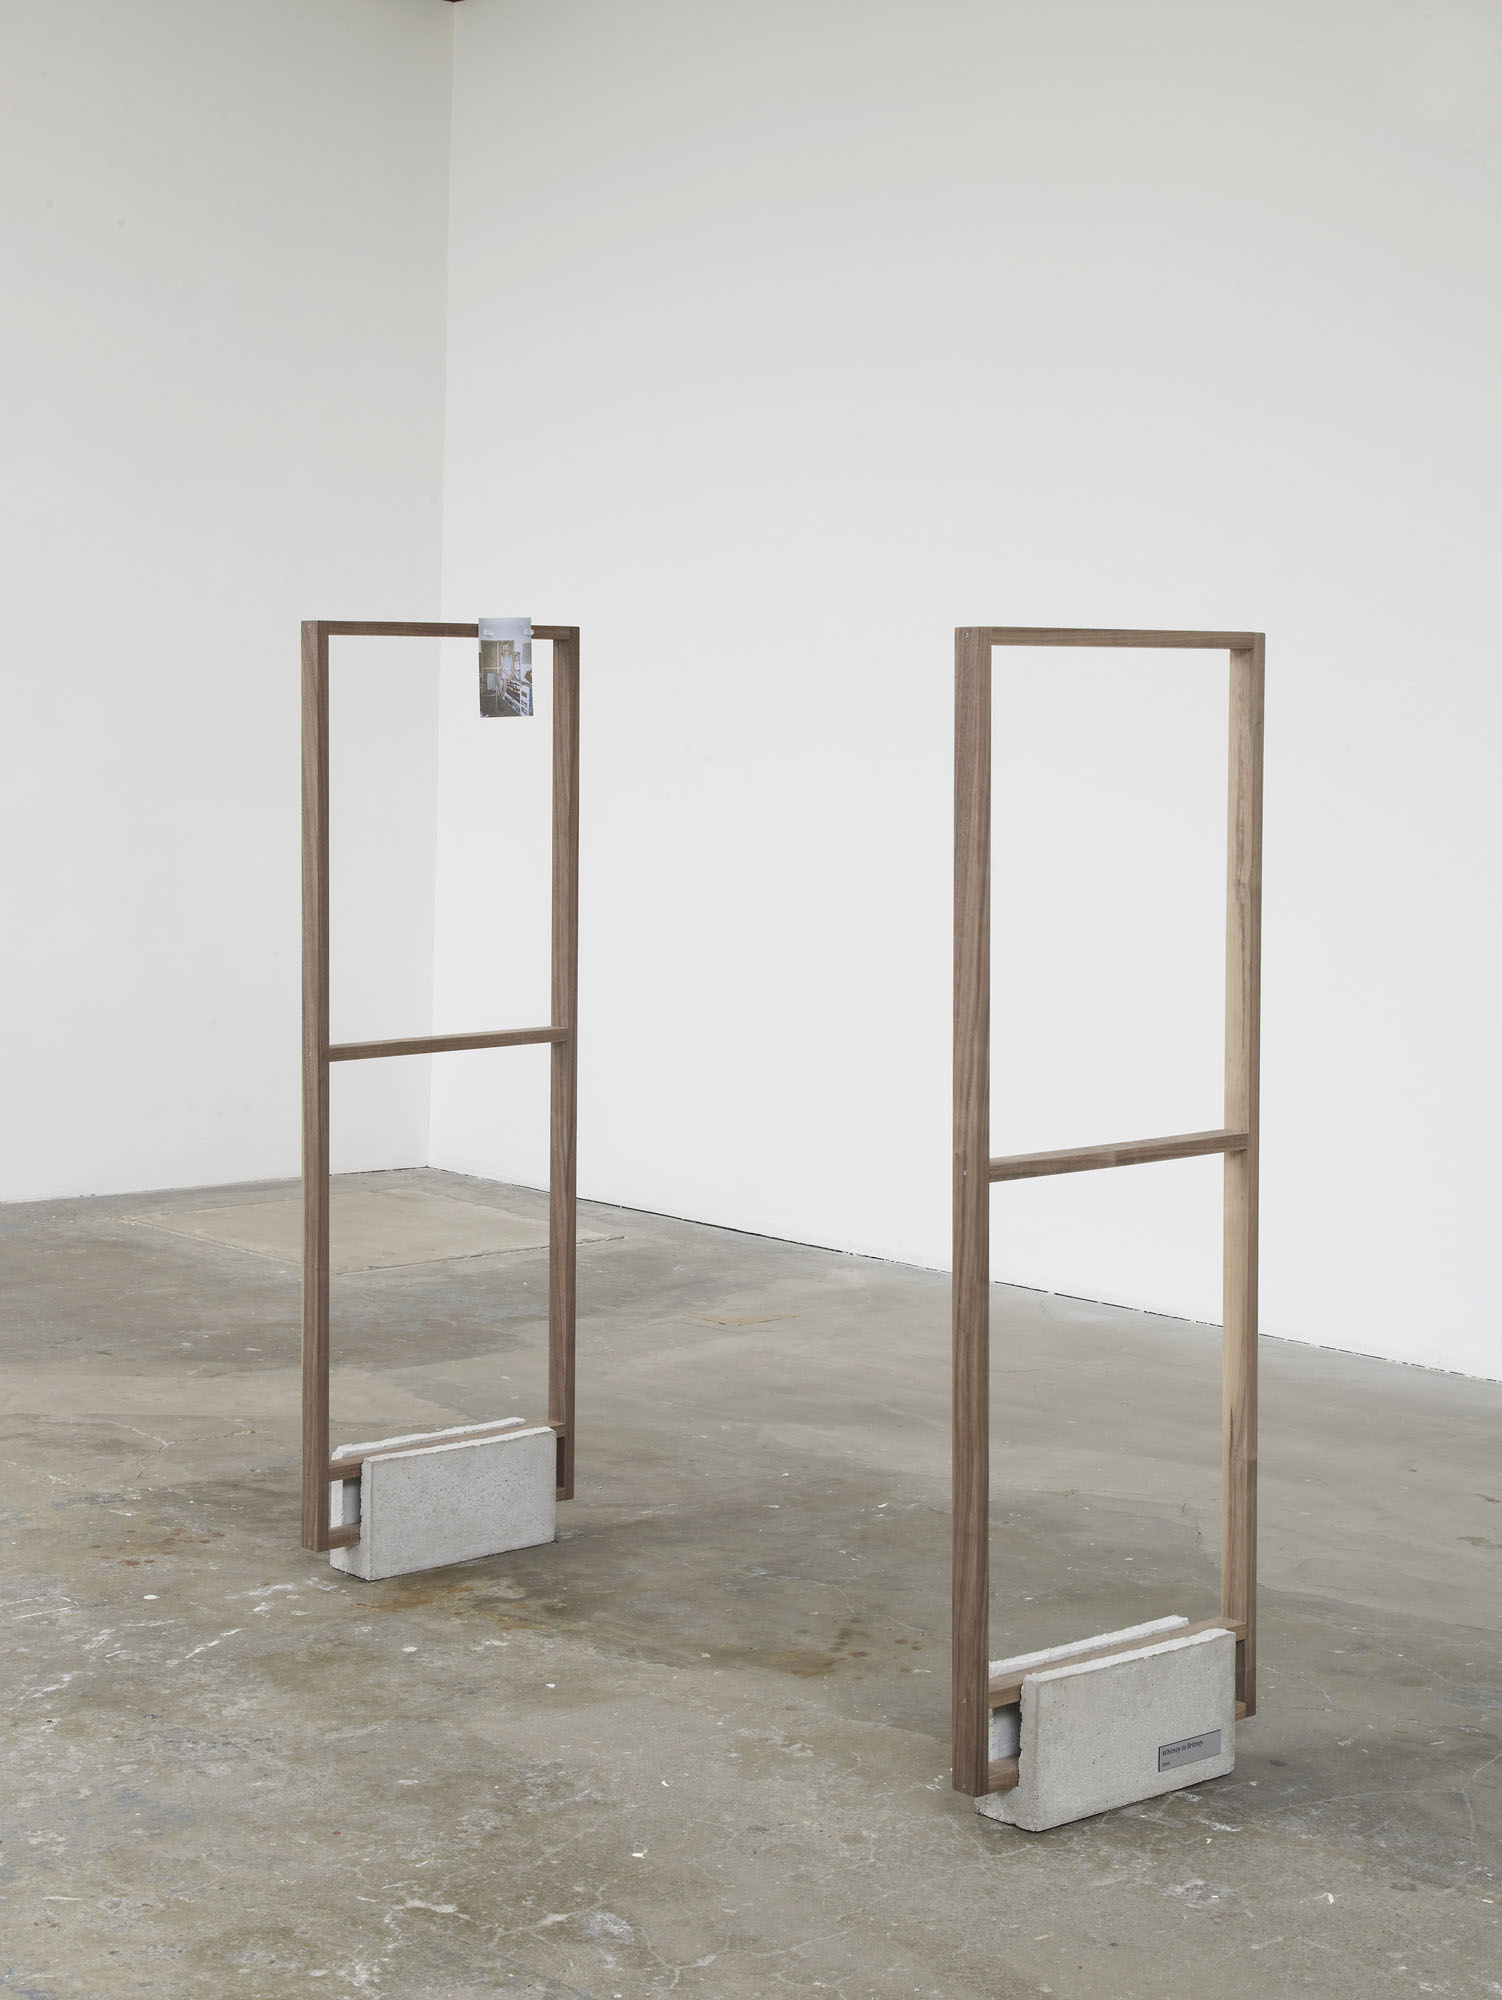 Whitney to Britney, 2016